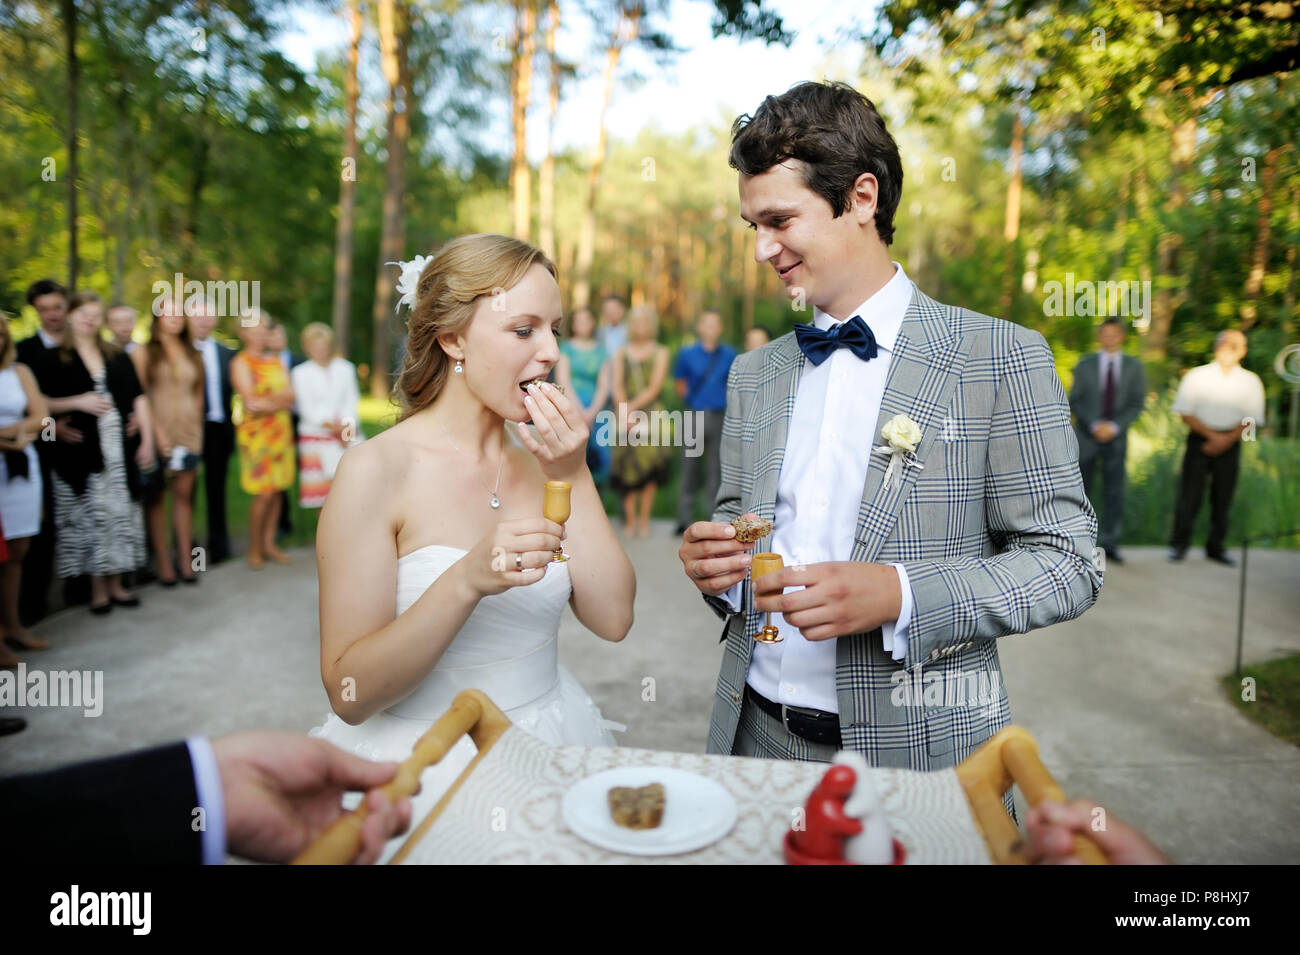 Bride and groom being met by parents with bread and water - Stock Image